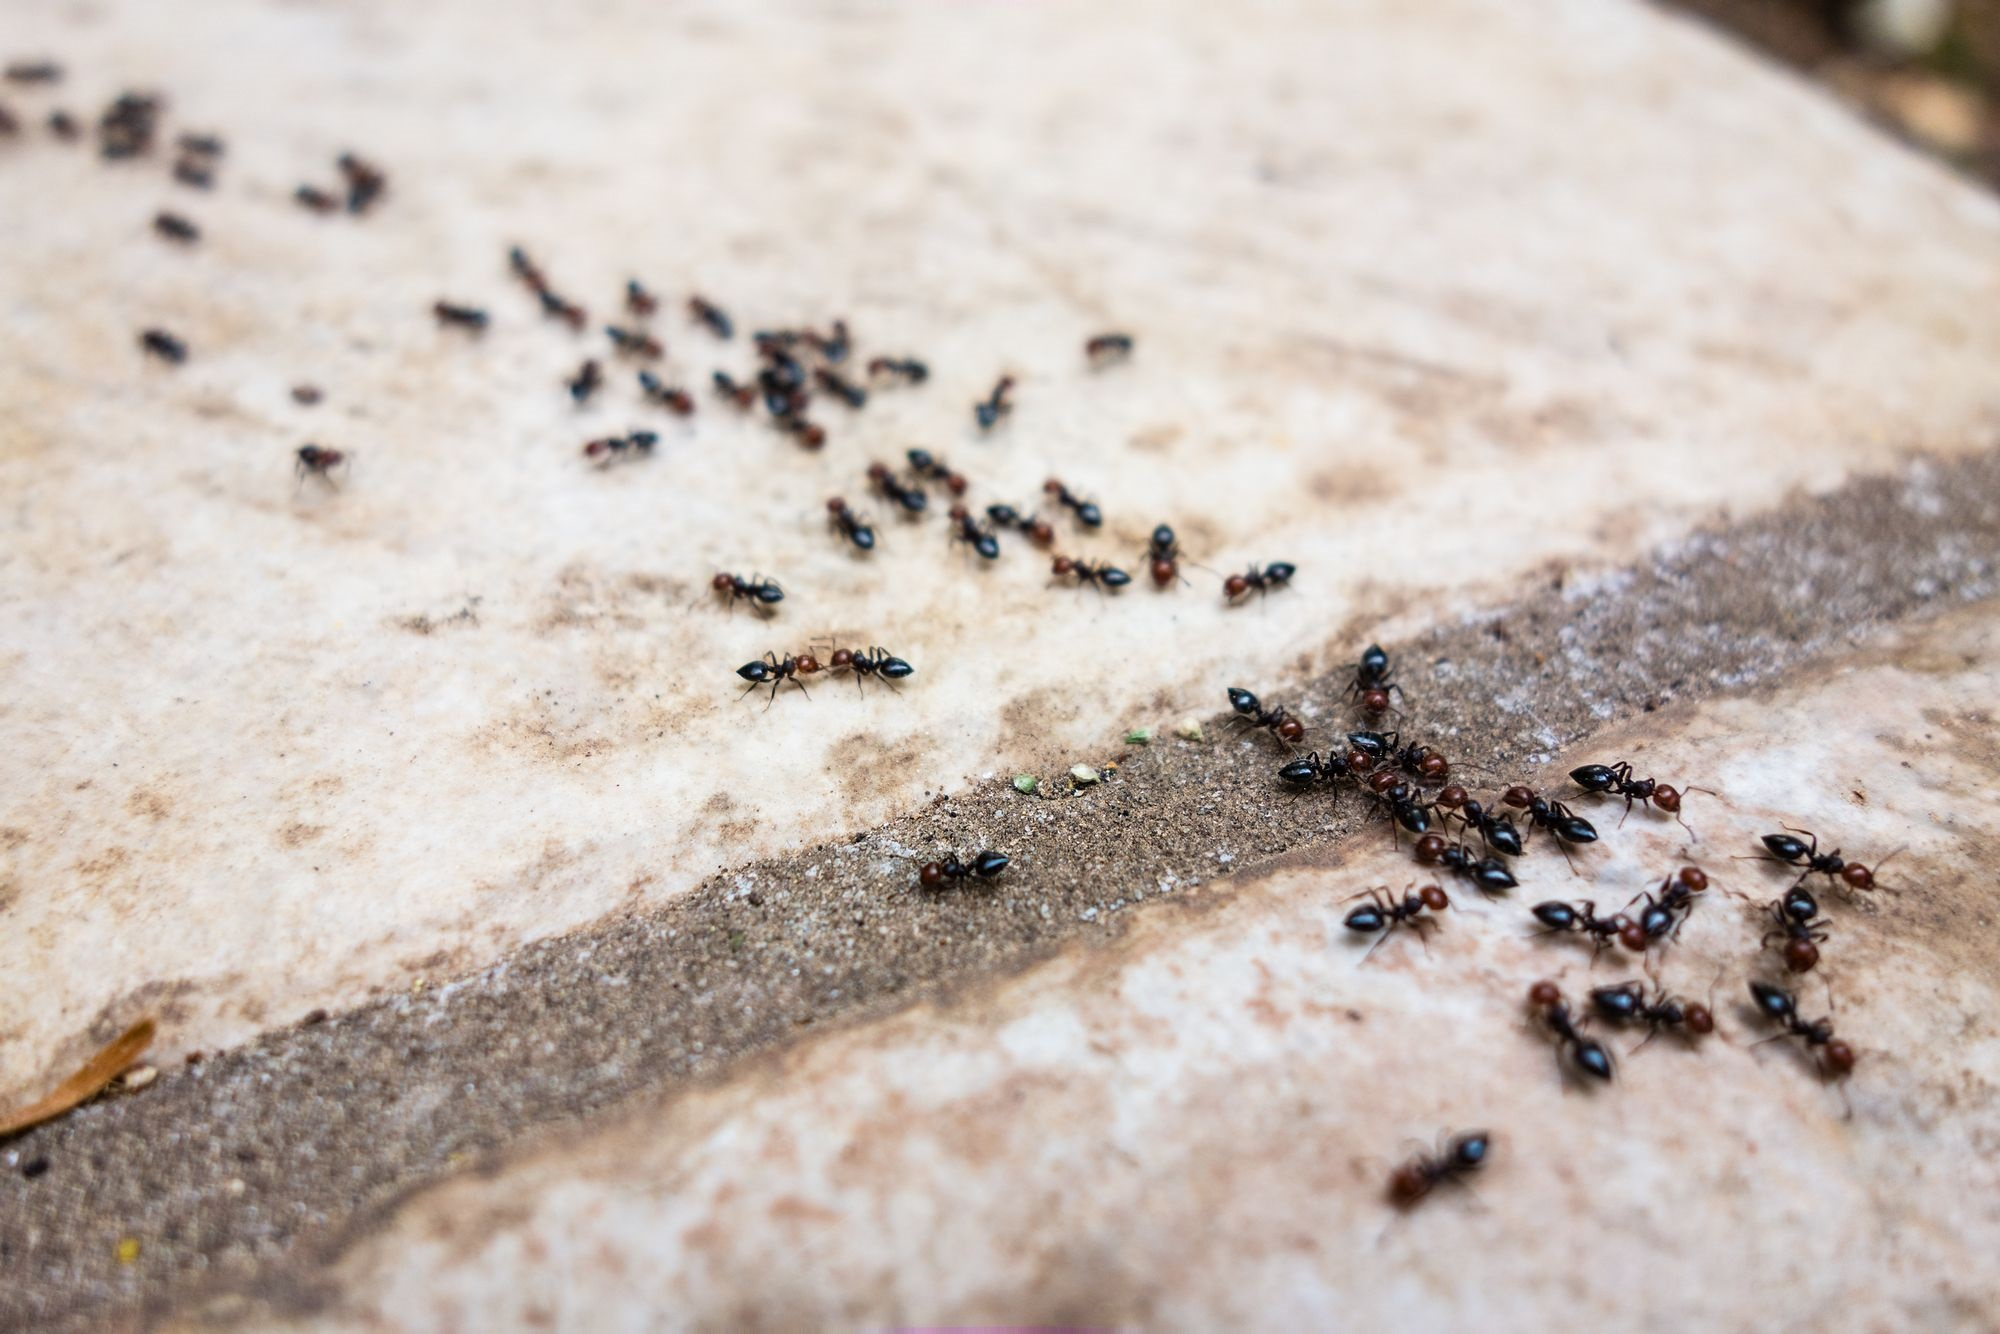 How does diatomaceous earth kill ants - Image By buglord